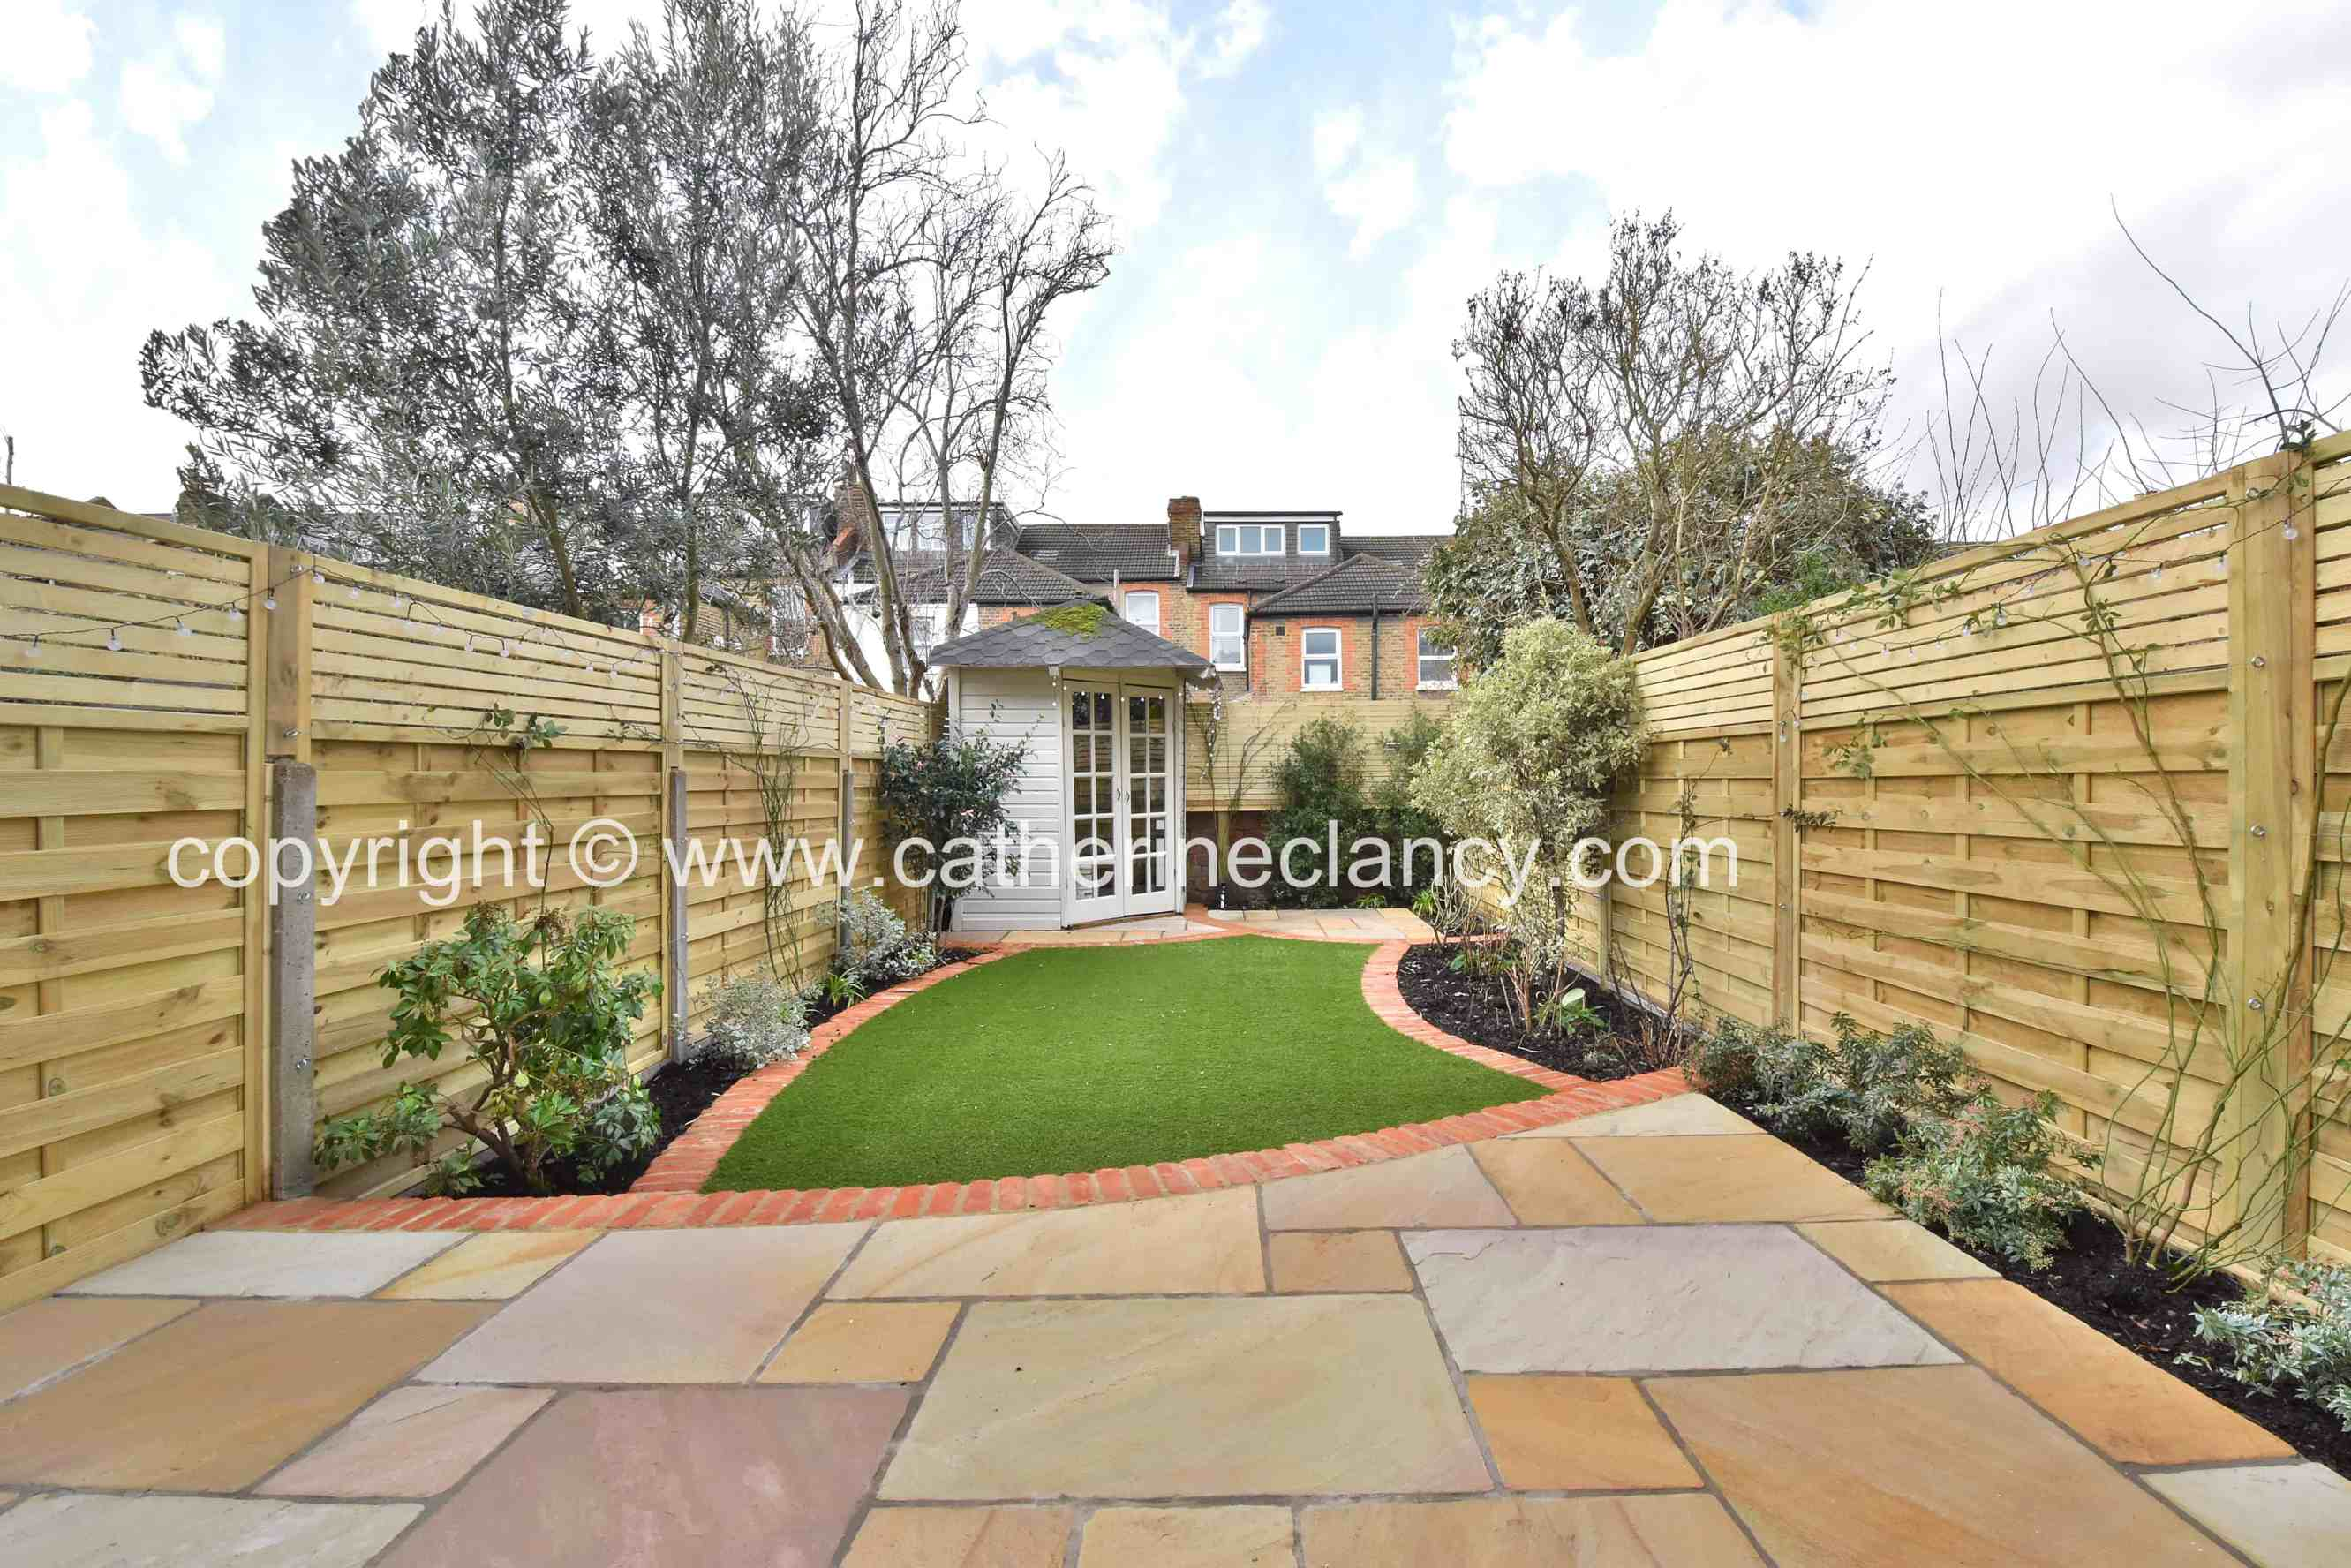 brockley garden just completed